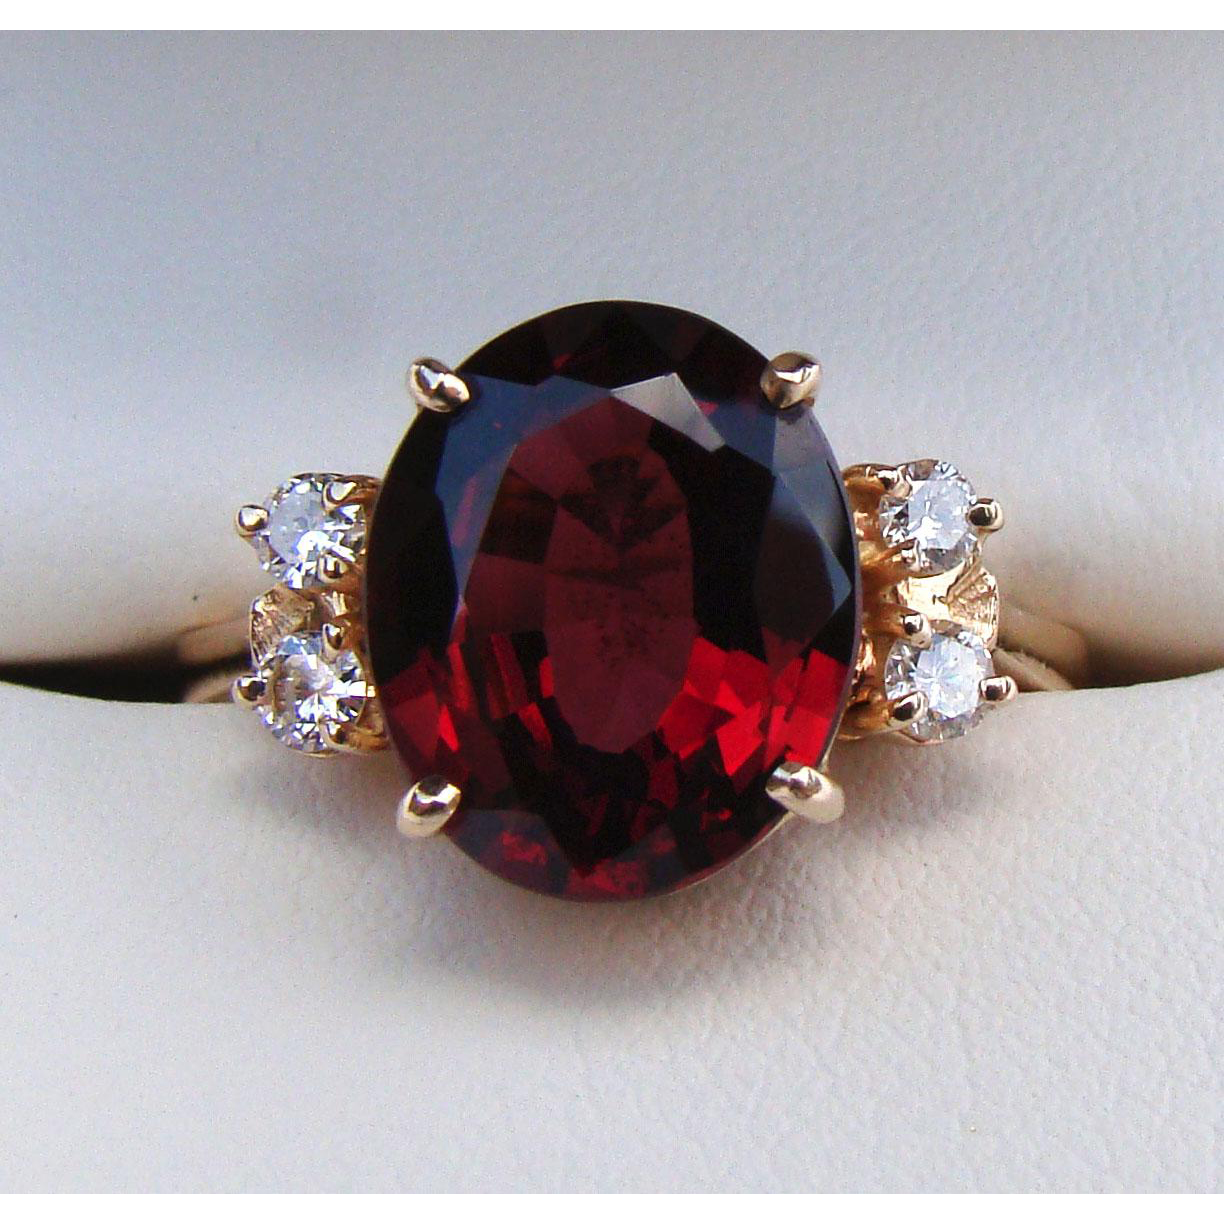 Lovely Estate 3.75 CT Mozambique Garnet & Diamond Ring